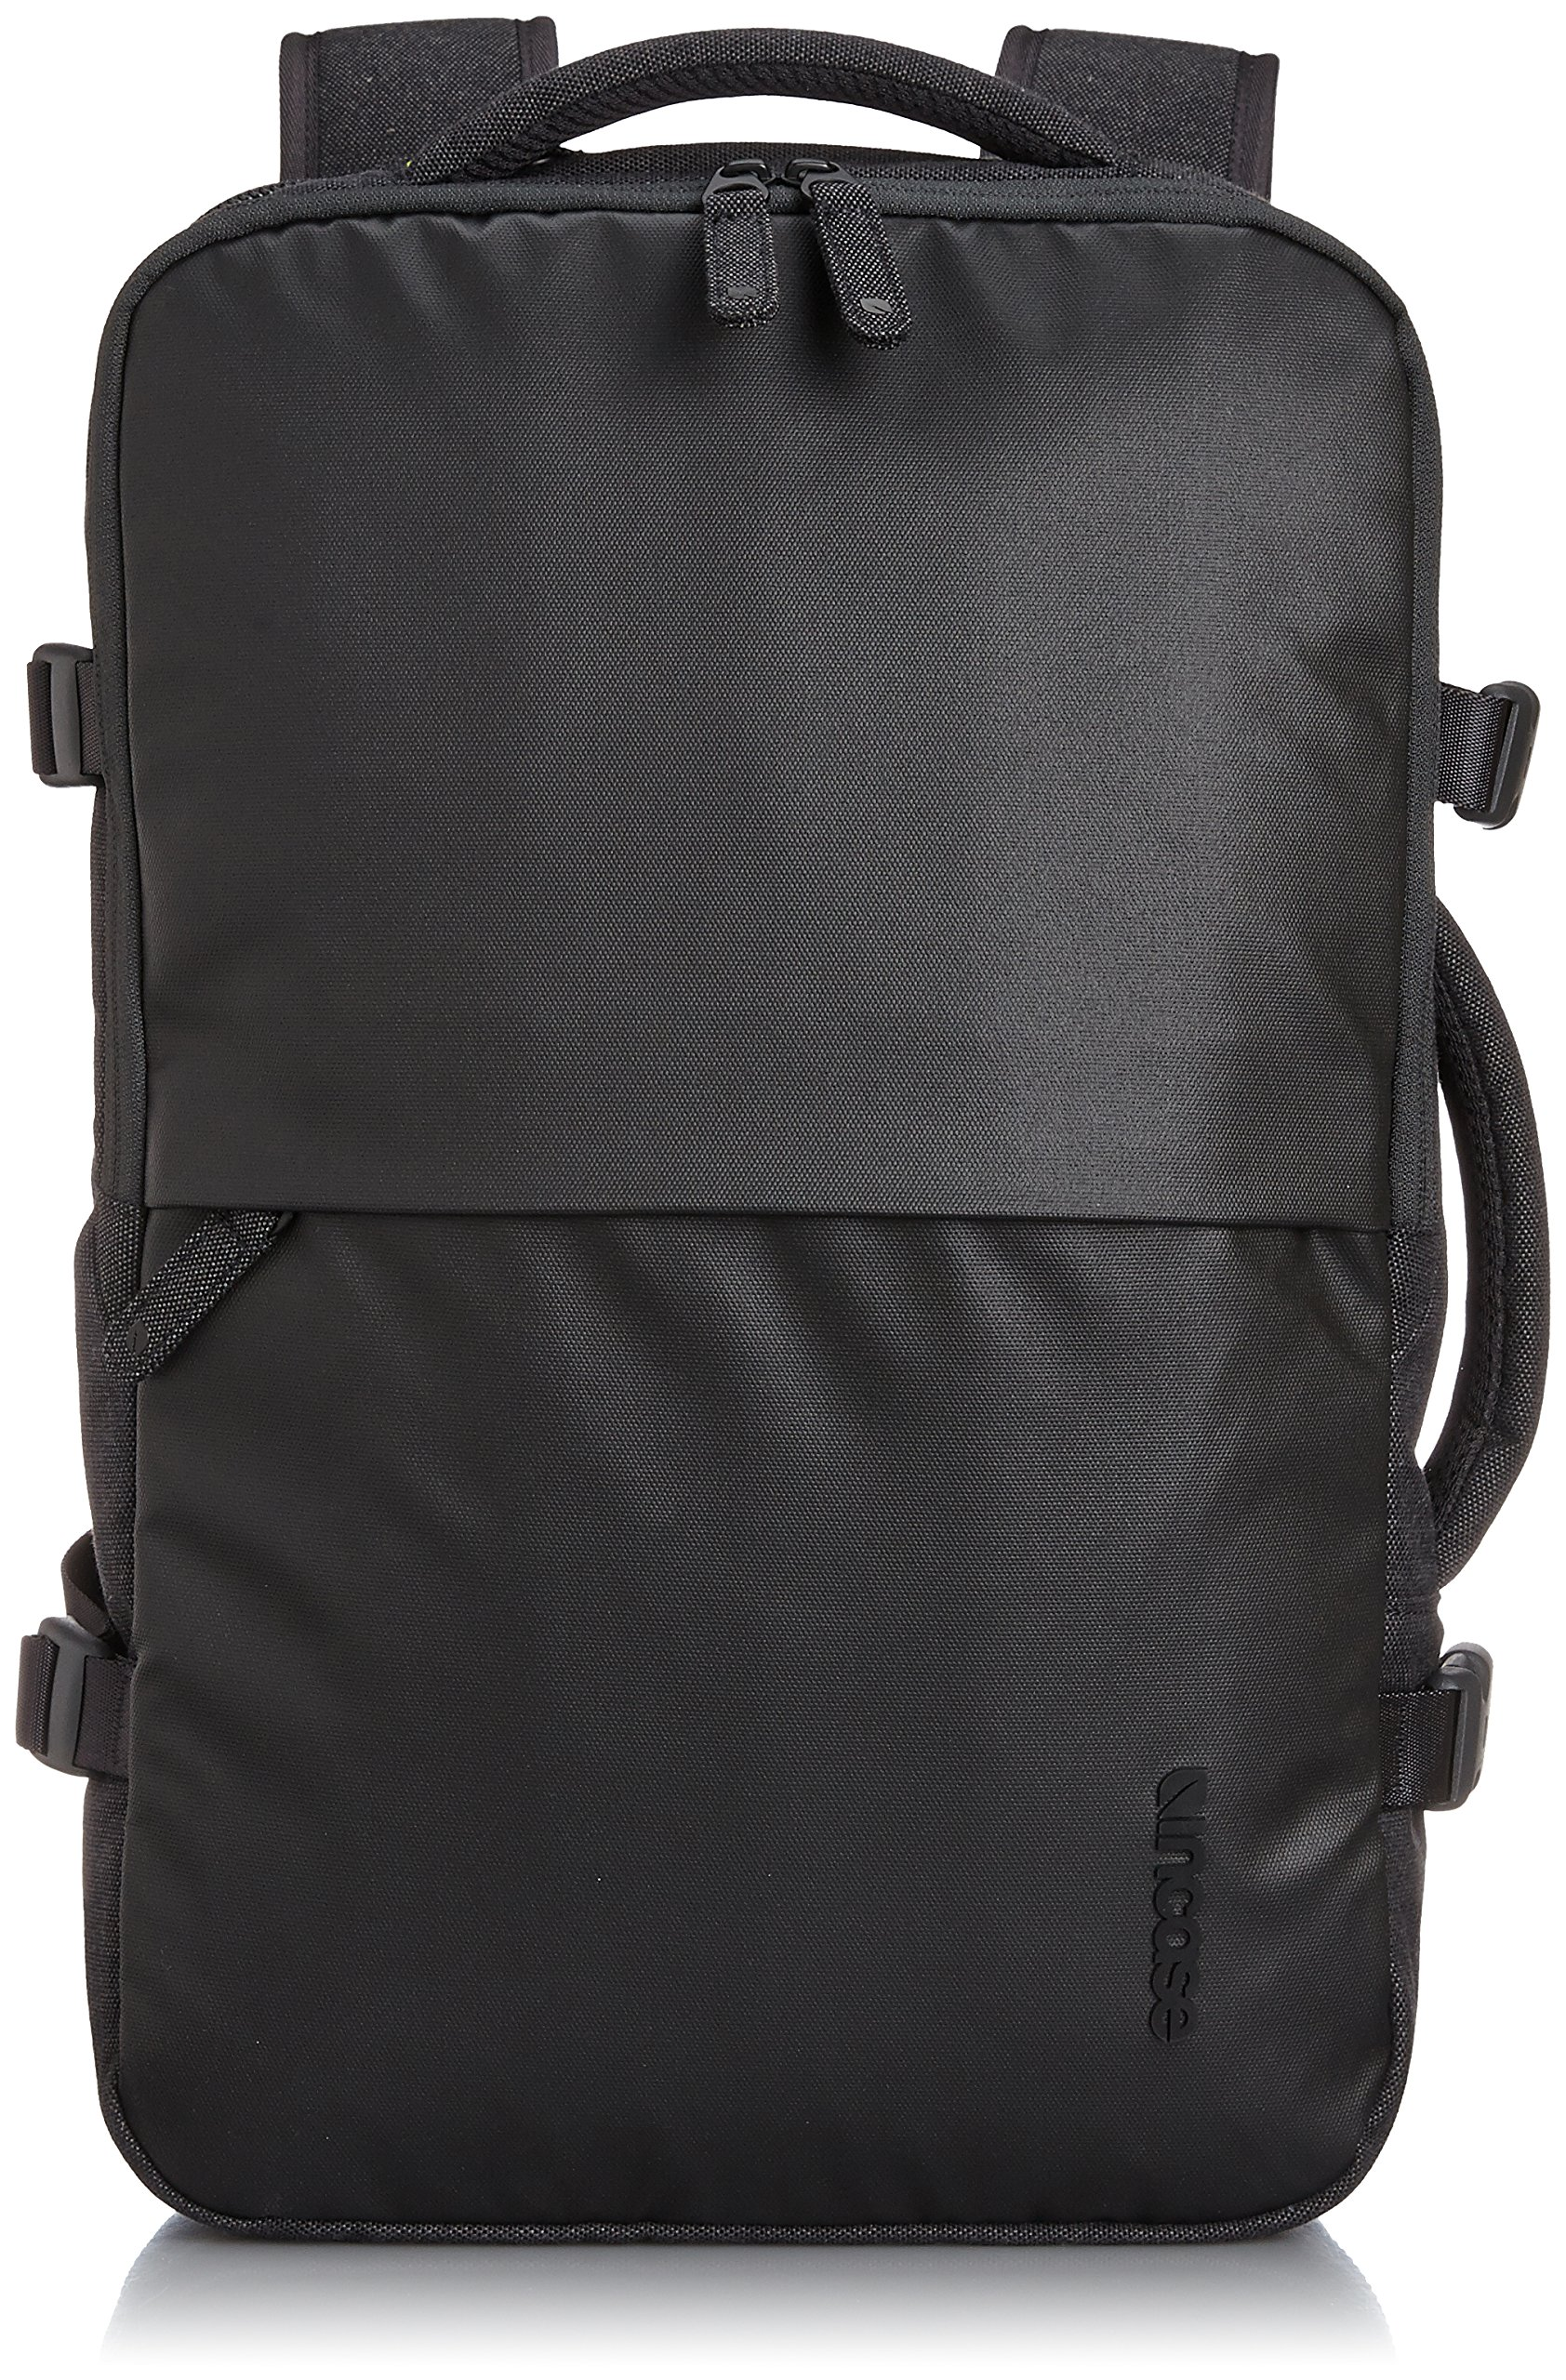 Incase EO Travel Backpack (Black) fits up to 17'' MacBook Pro by Incase Designs